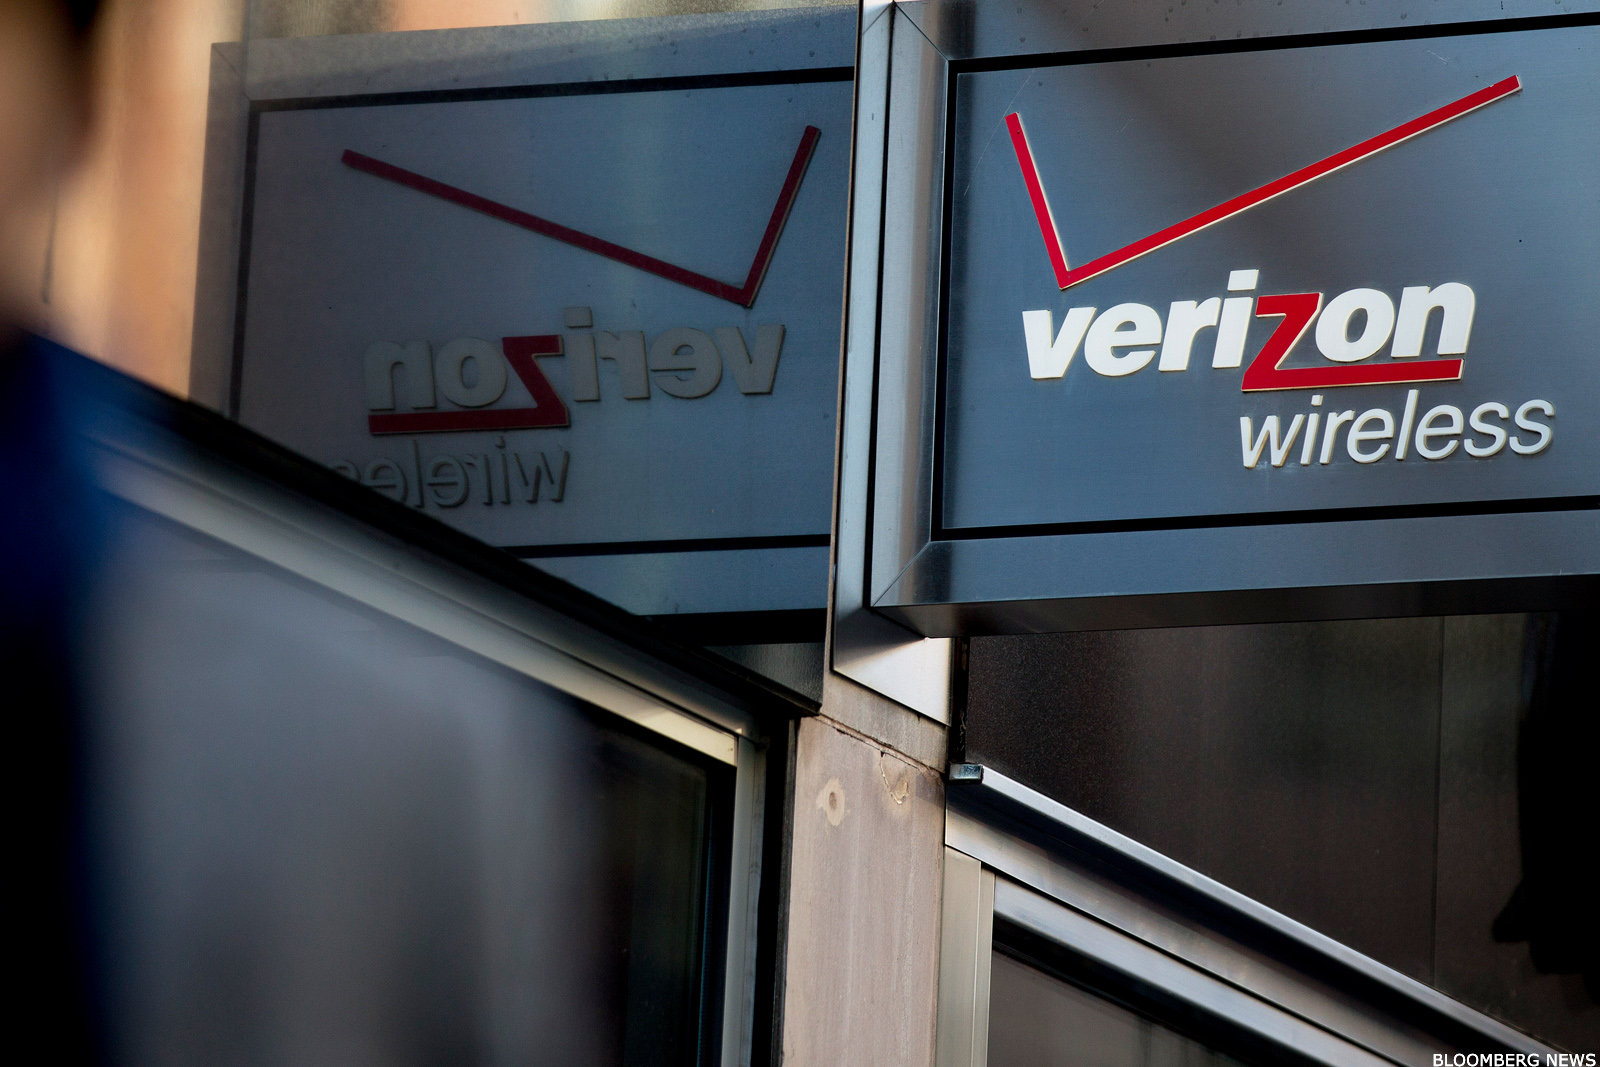 Verizon Vz Stock Up As Yahoo Deal Speculation Grows Thestreet